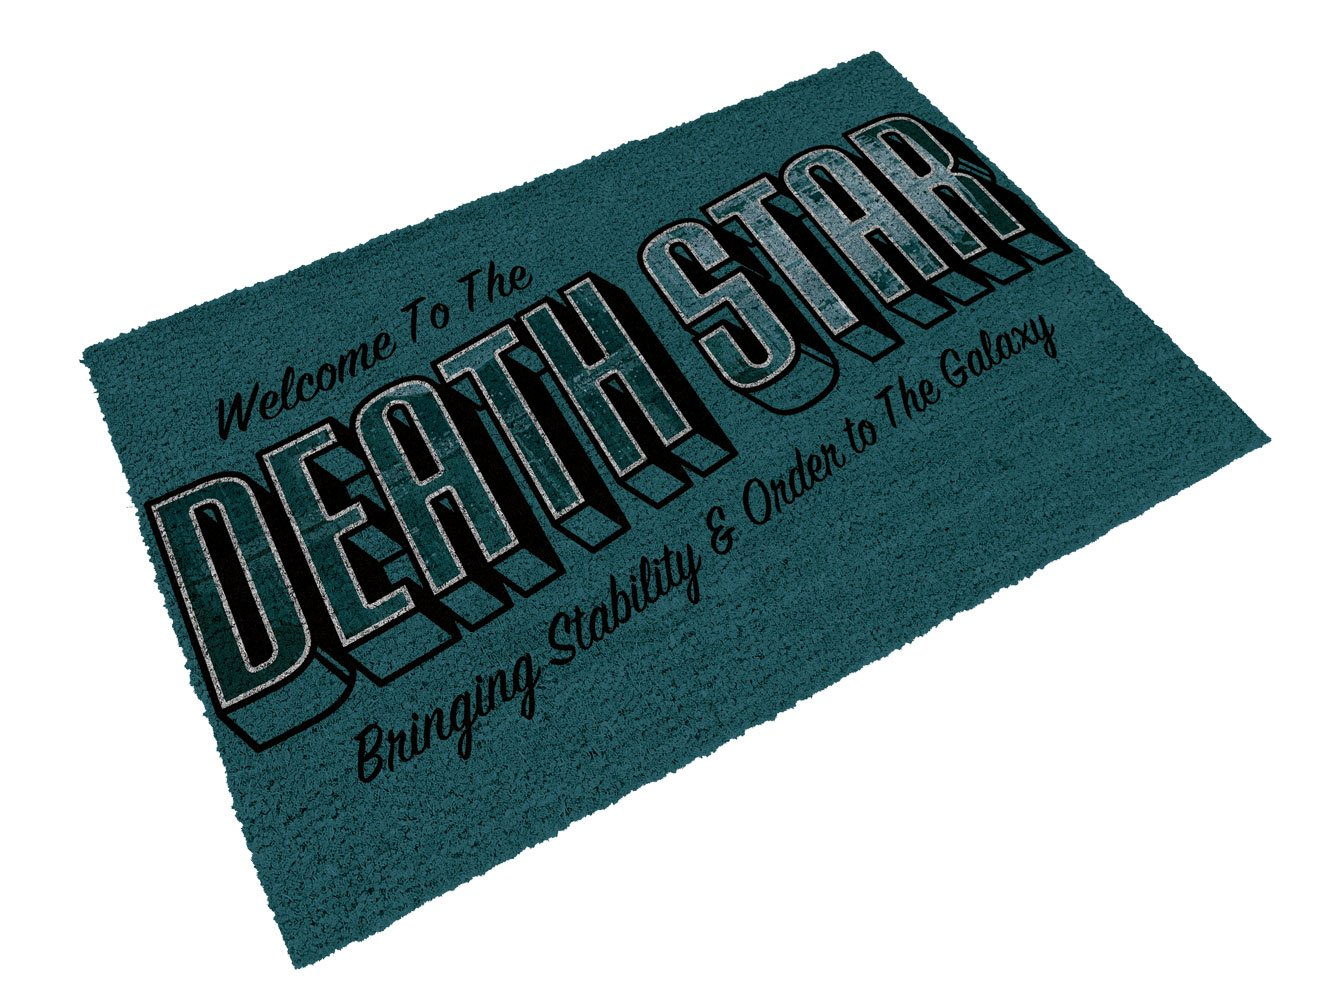 Star Wars Doormat Welcome To The Death Star 43 x 72 cm